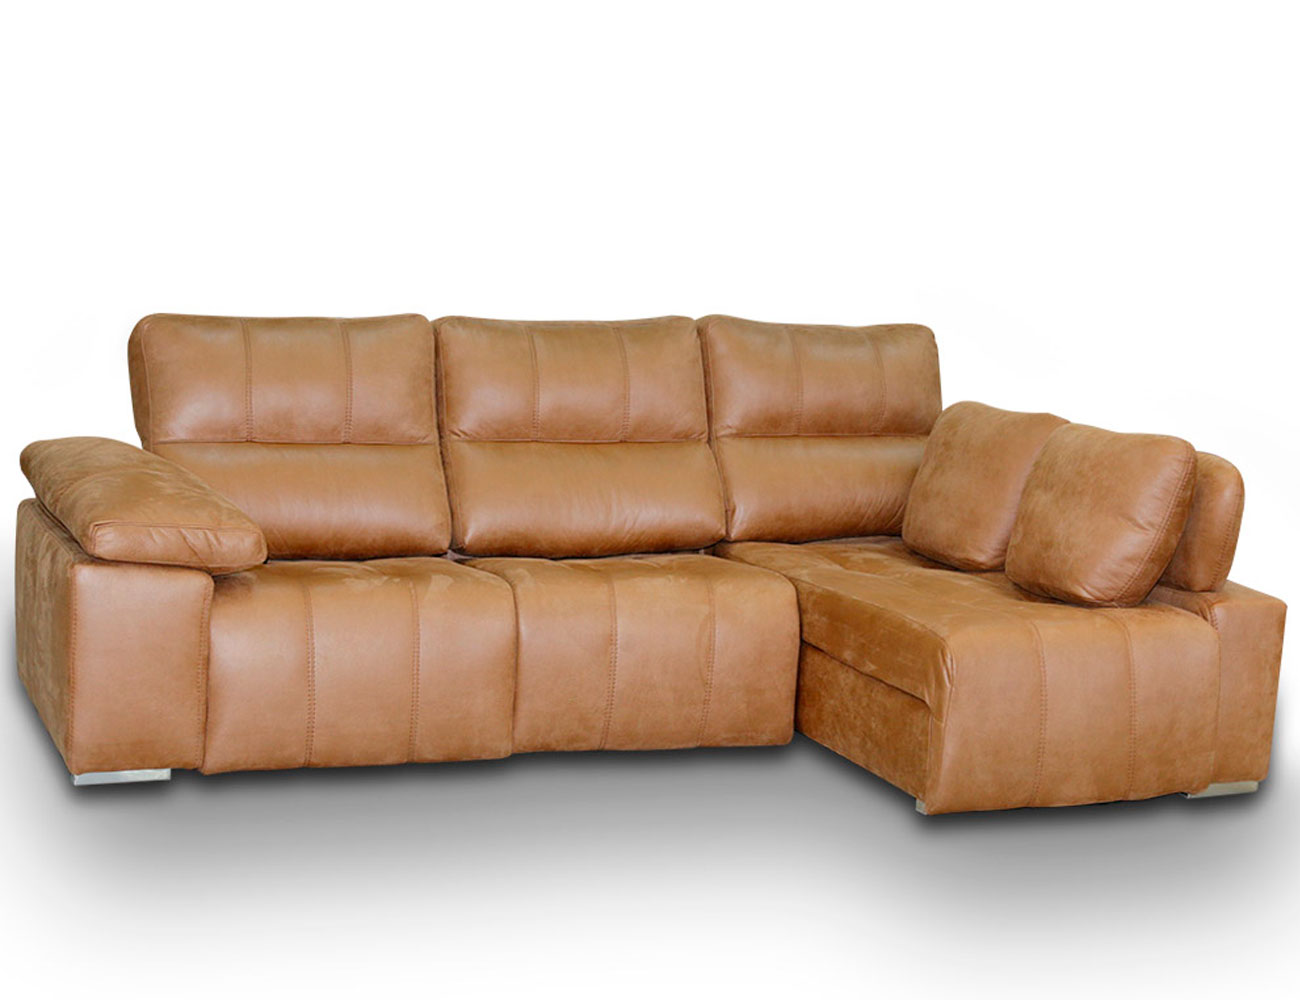 Sofa chaiselongue relax 2 motores anti manchas3